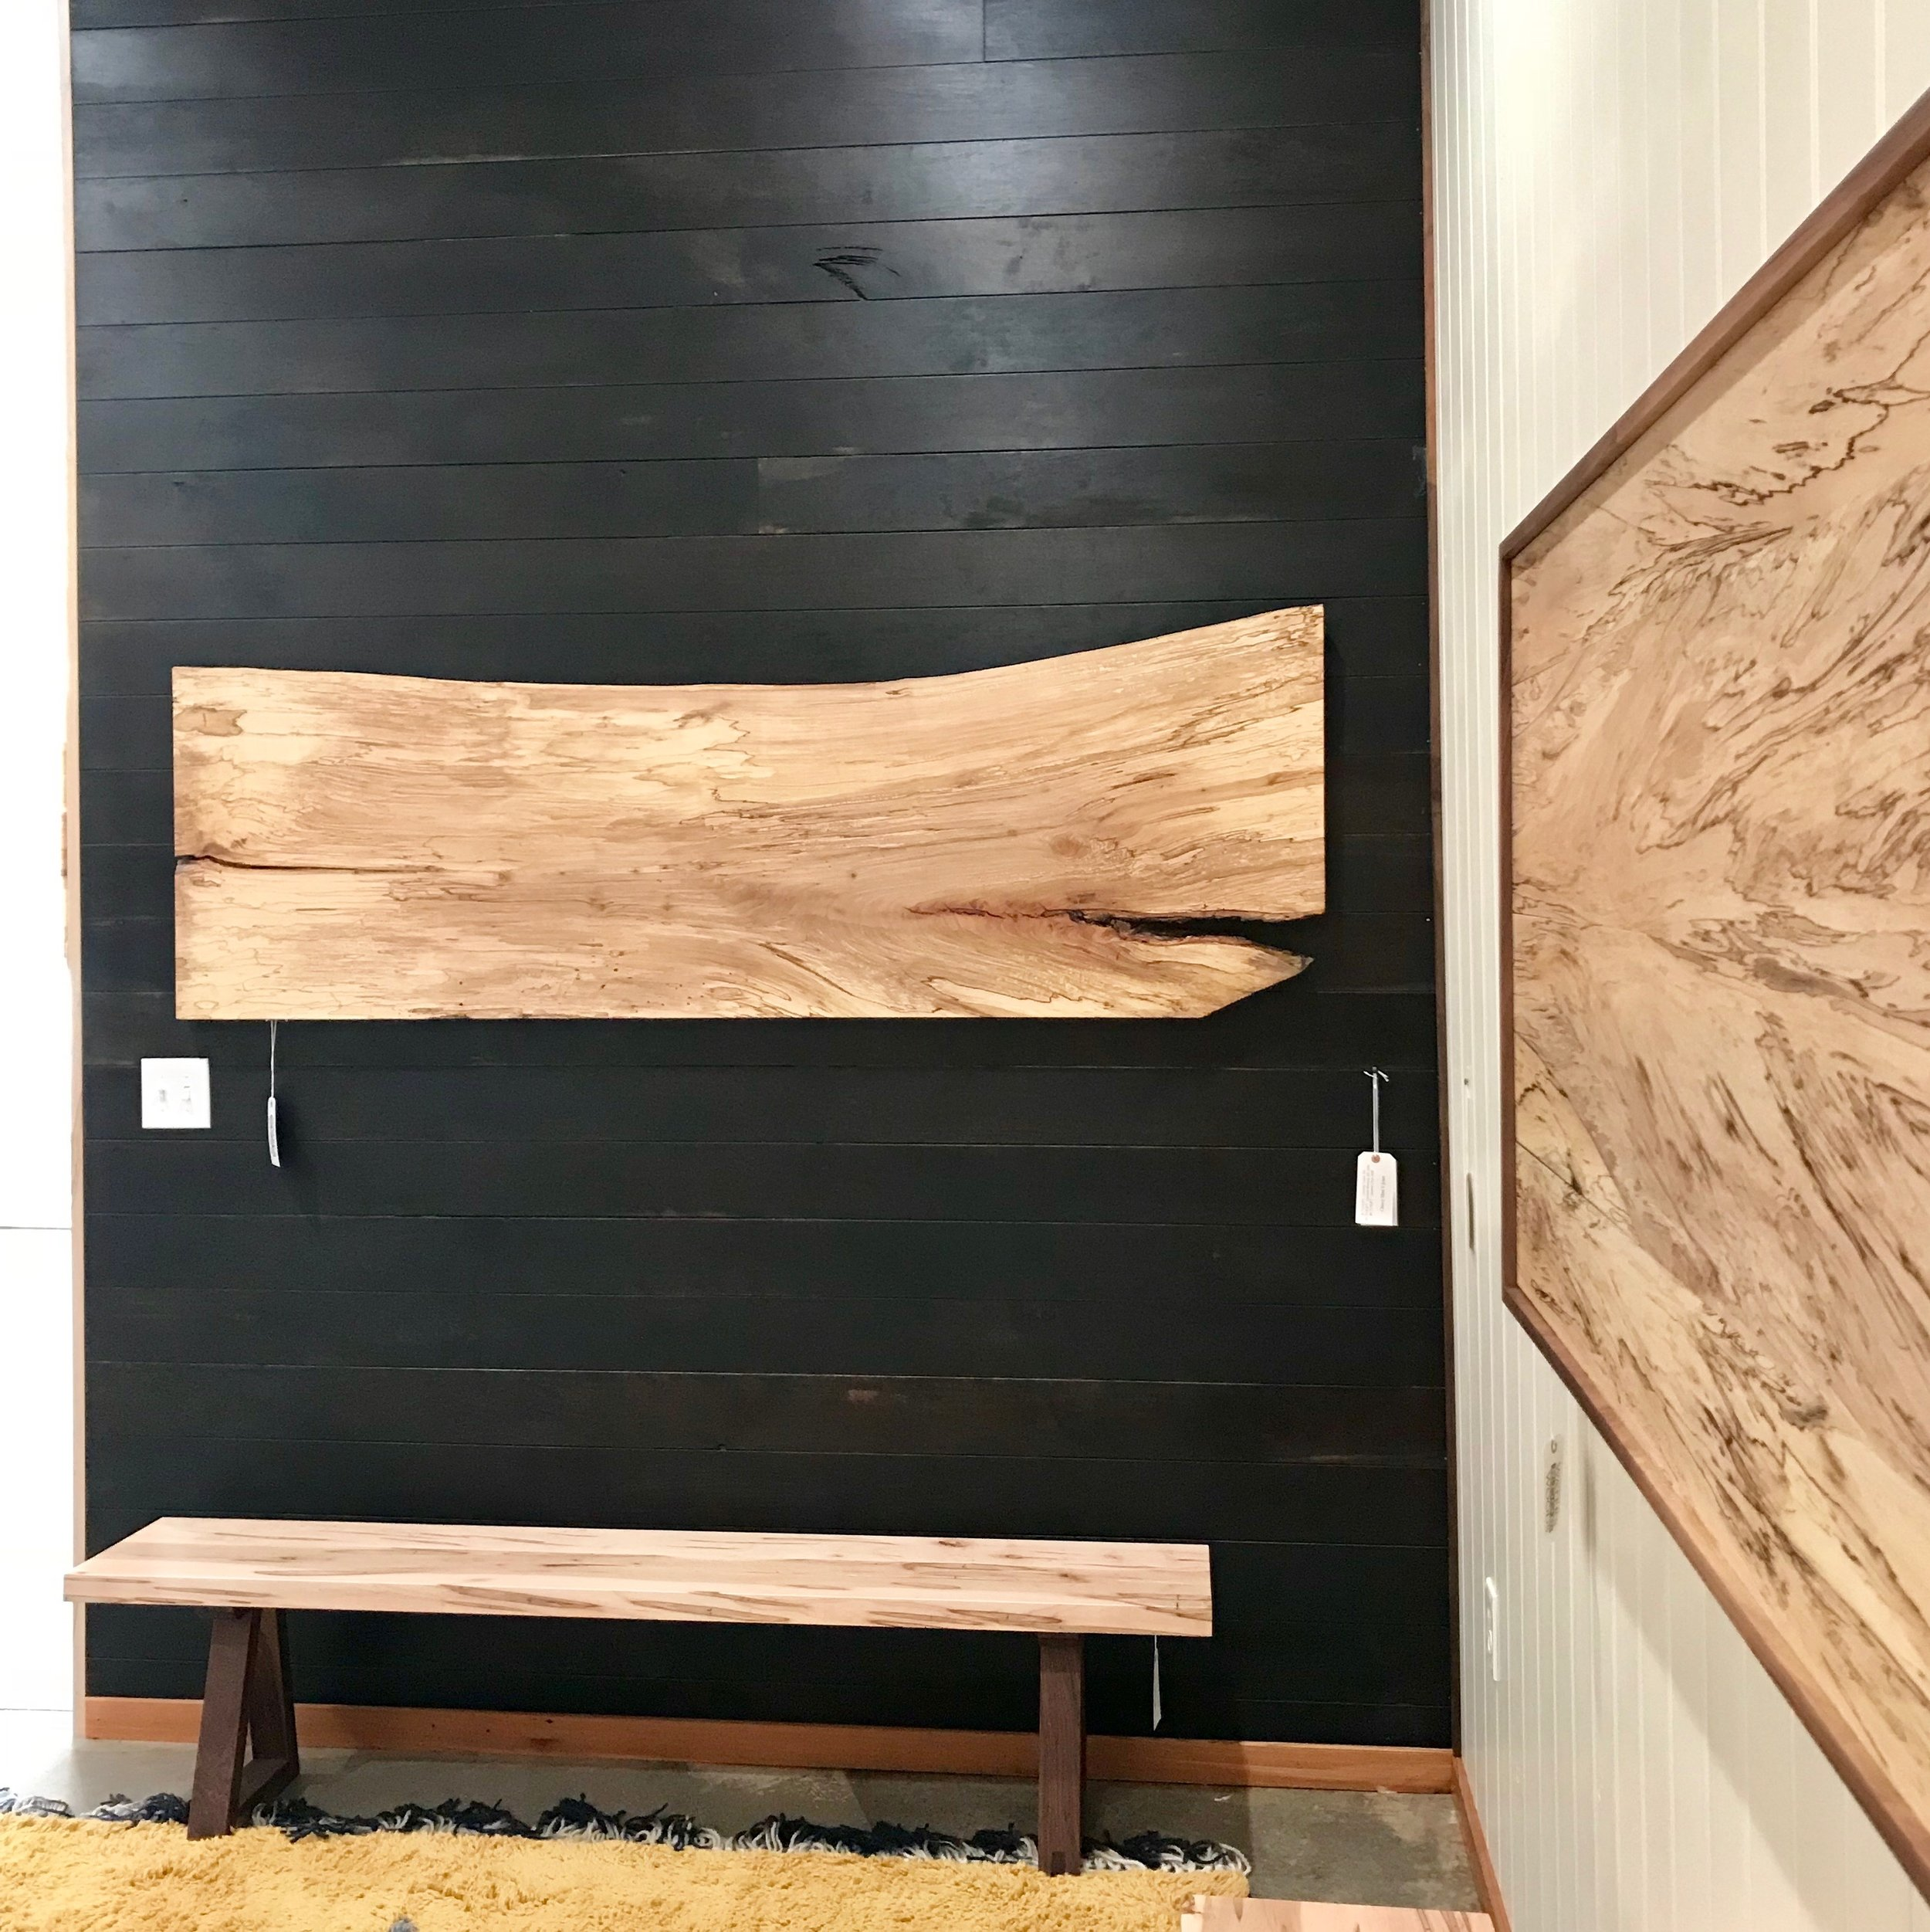 Live-Edge Floating Headboard for sale via this  link .